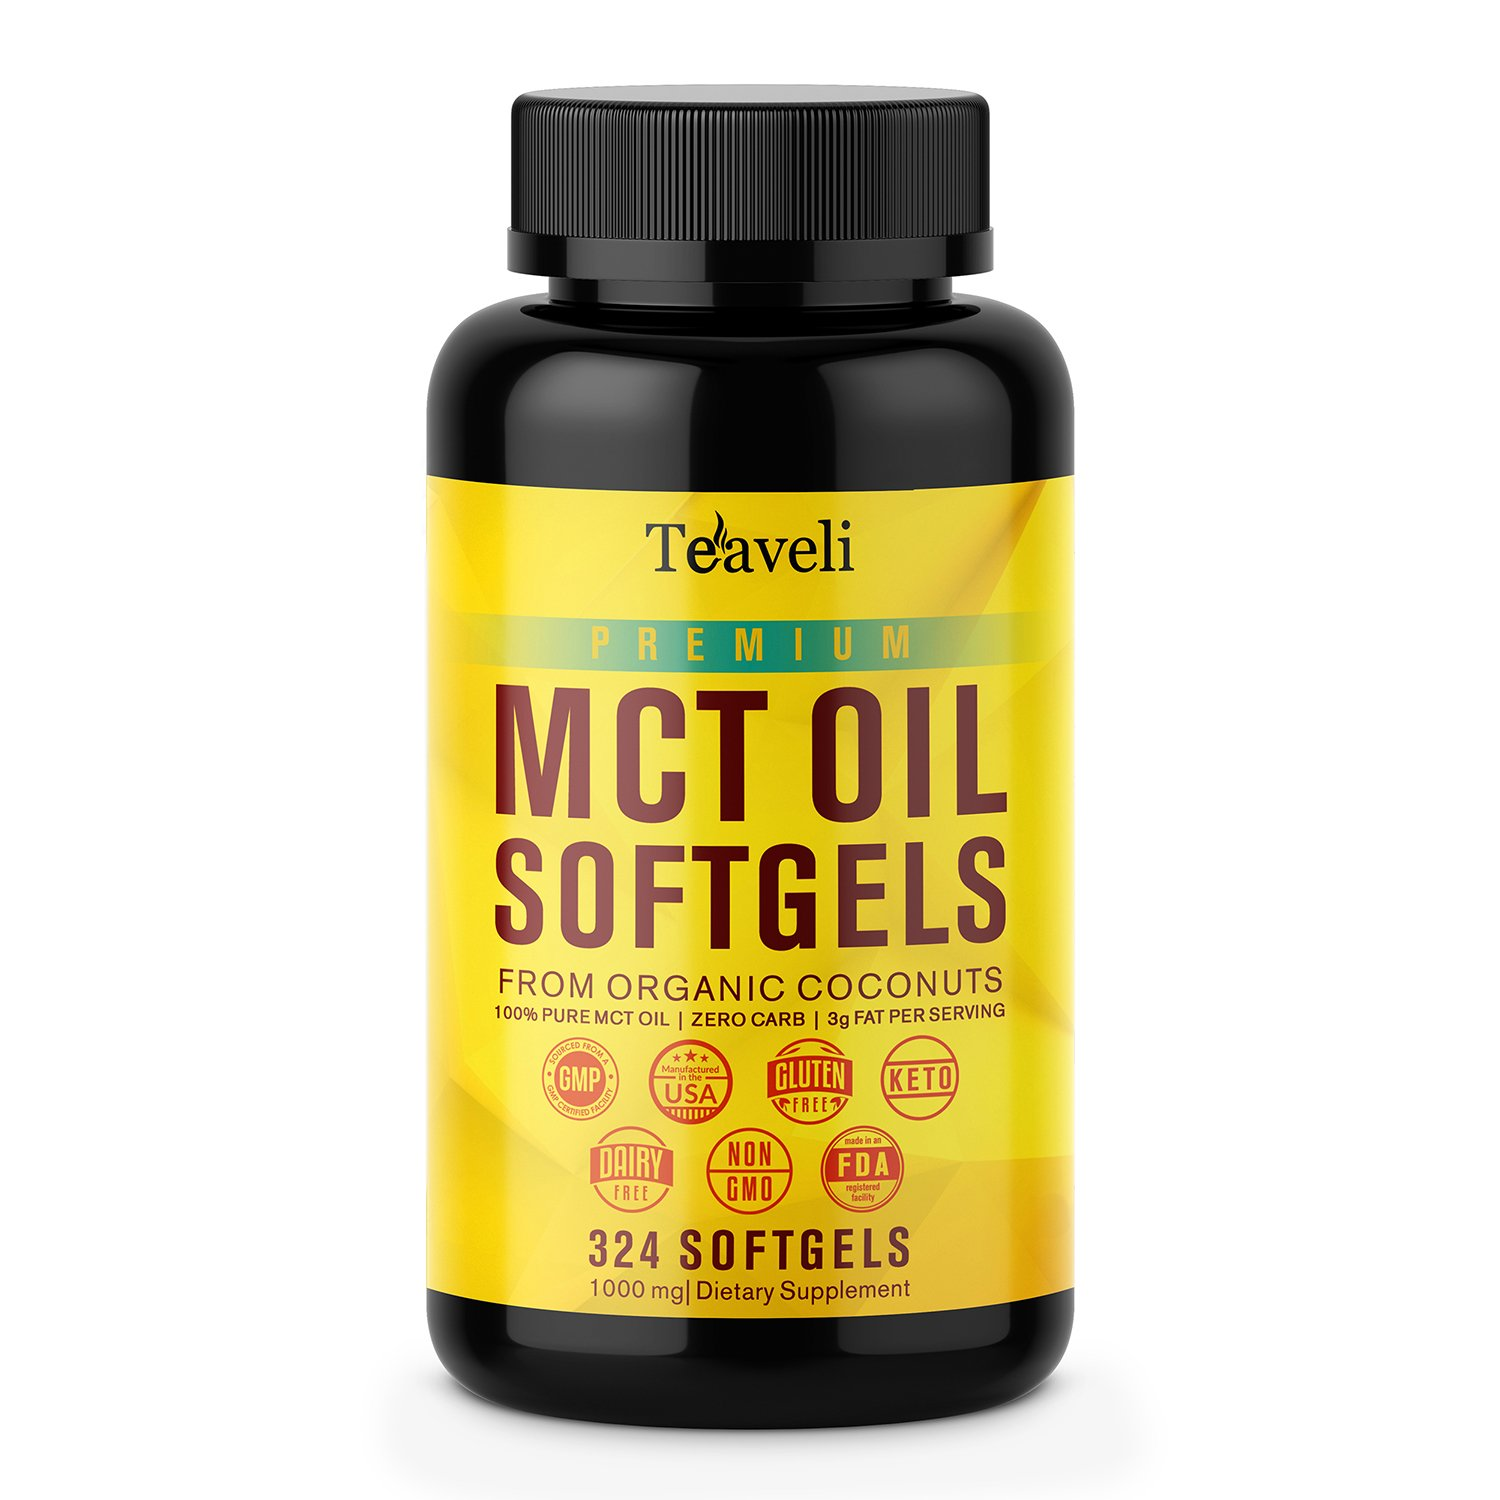 Premium Keto MCT Oil Softgel Capsules Derived From Organic Coconut- 3000mg x 108 Servings- Pure C8 & C10 MCT Fatty Acids-Perfect Ketogenic Ketosis Diet Supplement for Energy, Focus & Weight Management